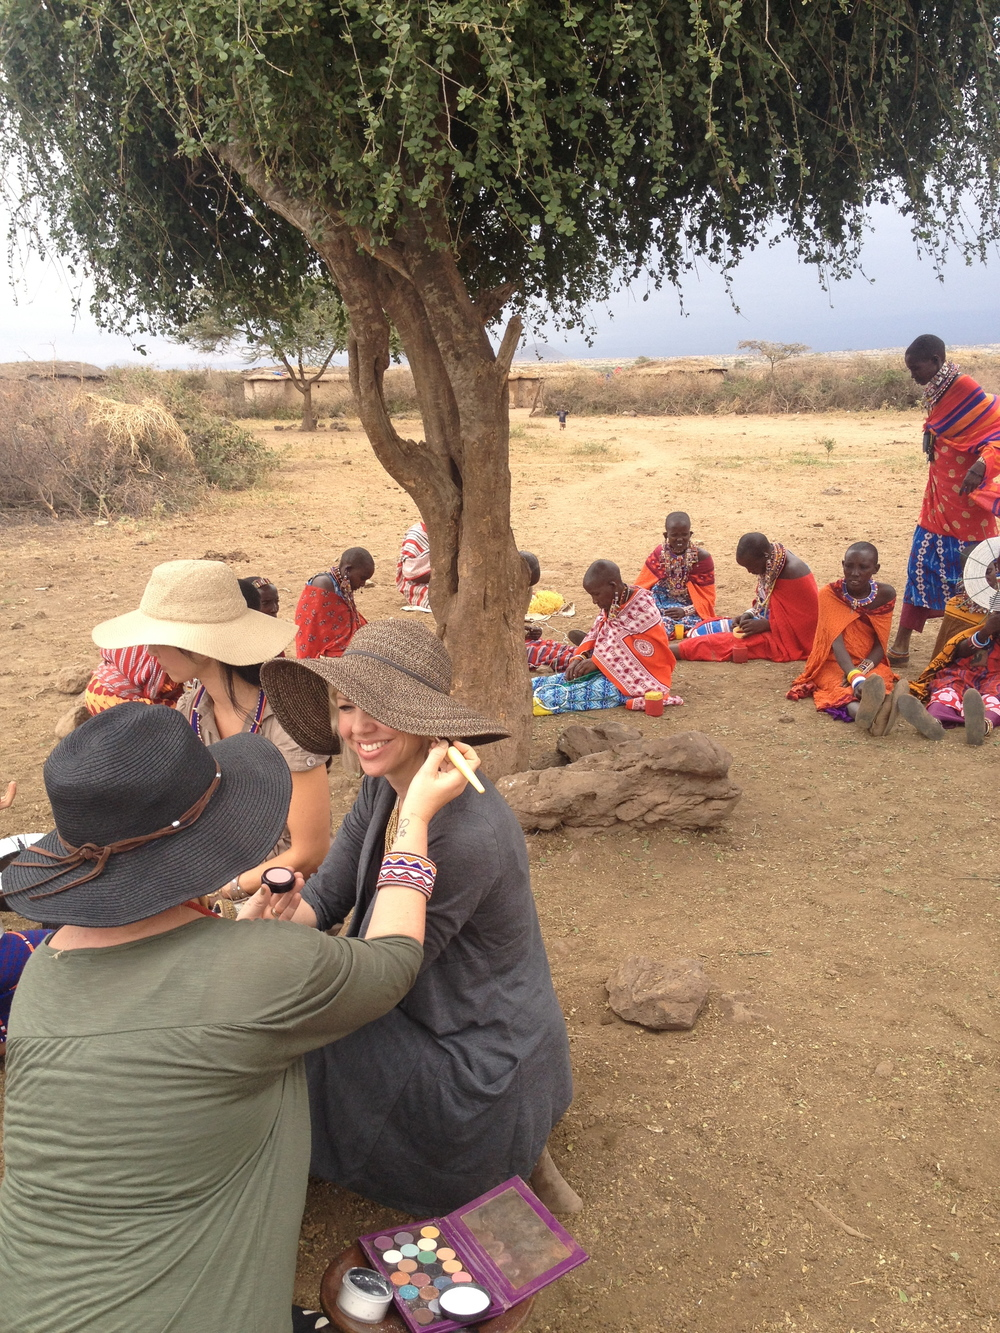 On location in  Amboseli National Park , Kenya with Kirsten and team.  Kirsten was prepping for a promotional video to help tell the story of these beautiful Massai women  Raven + Lily  is in partnership with.